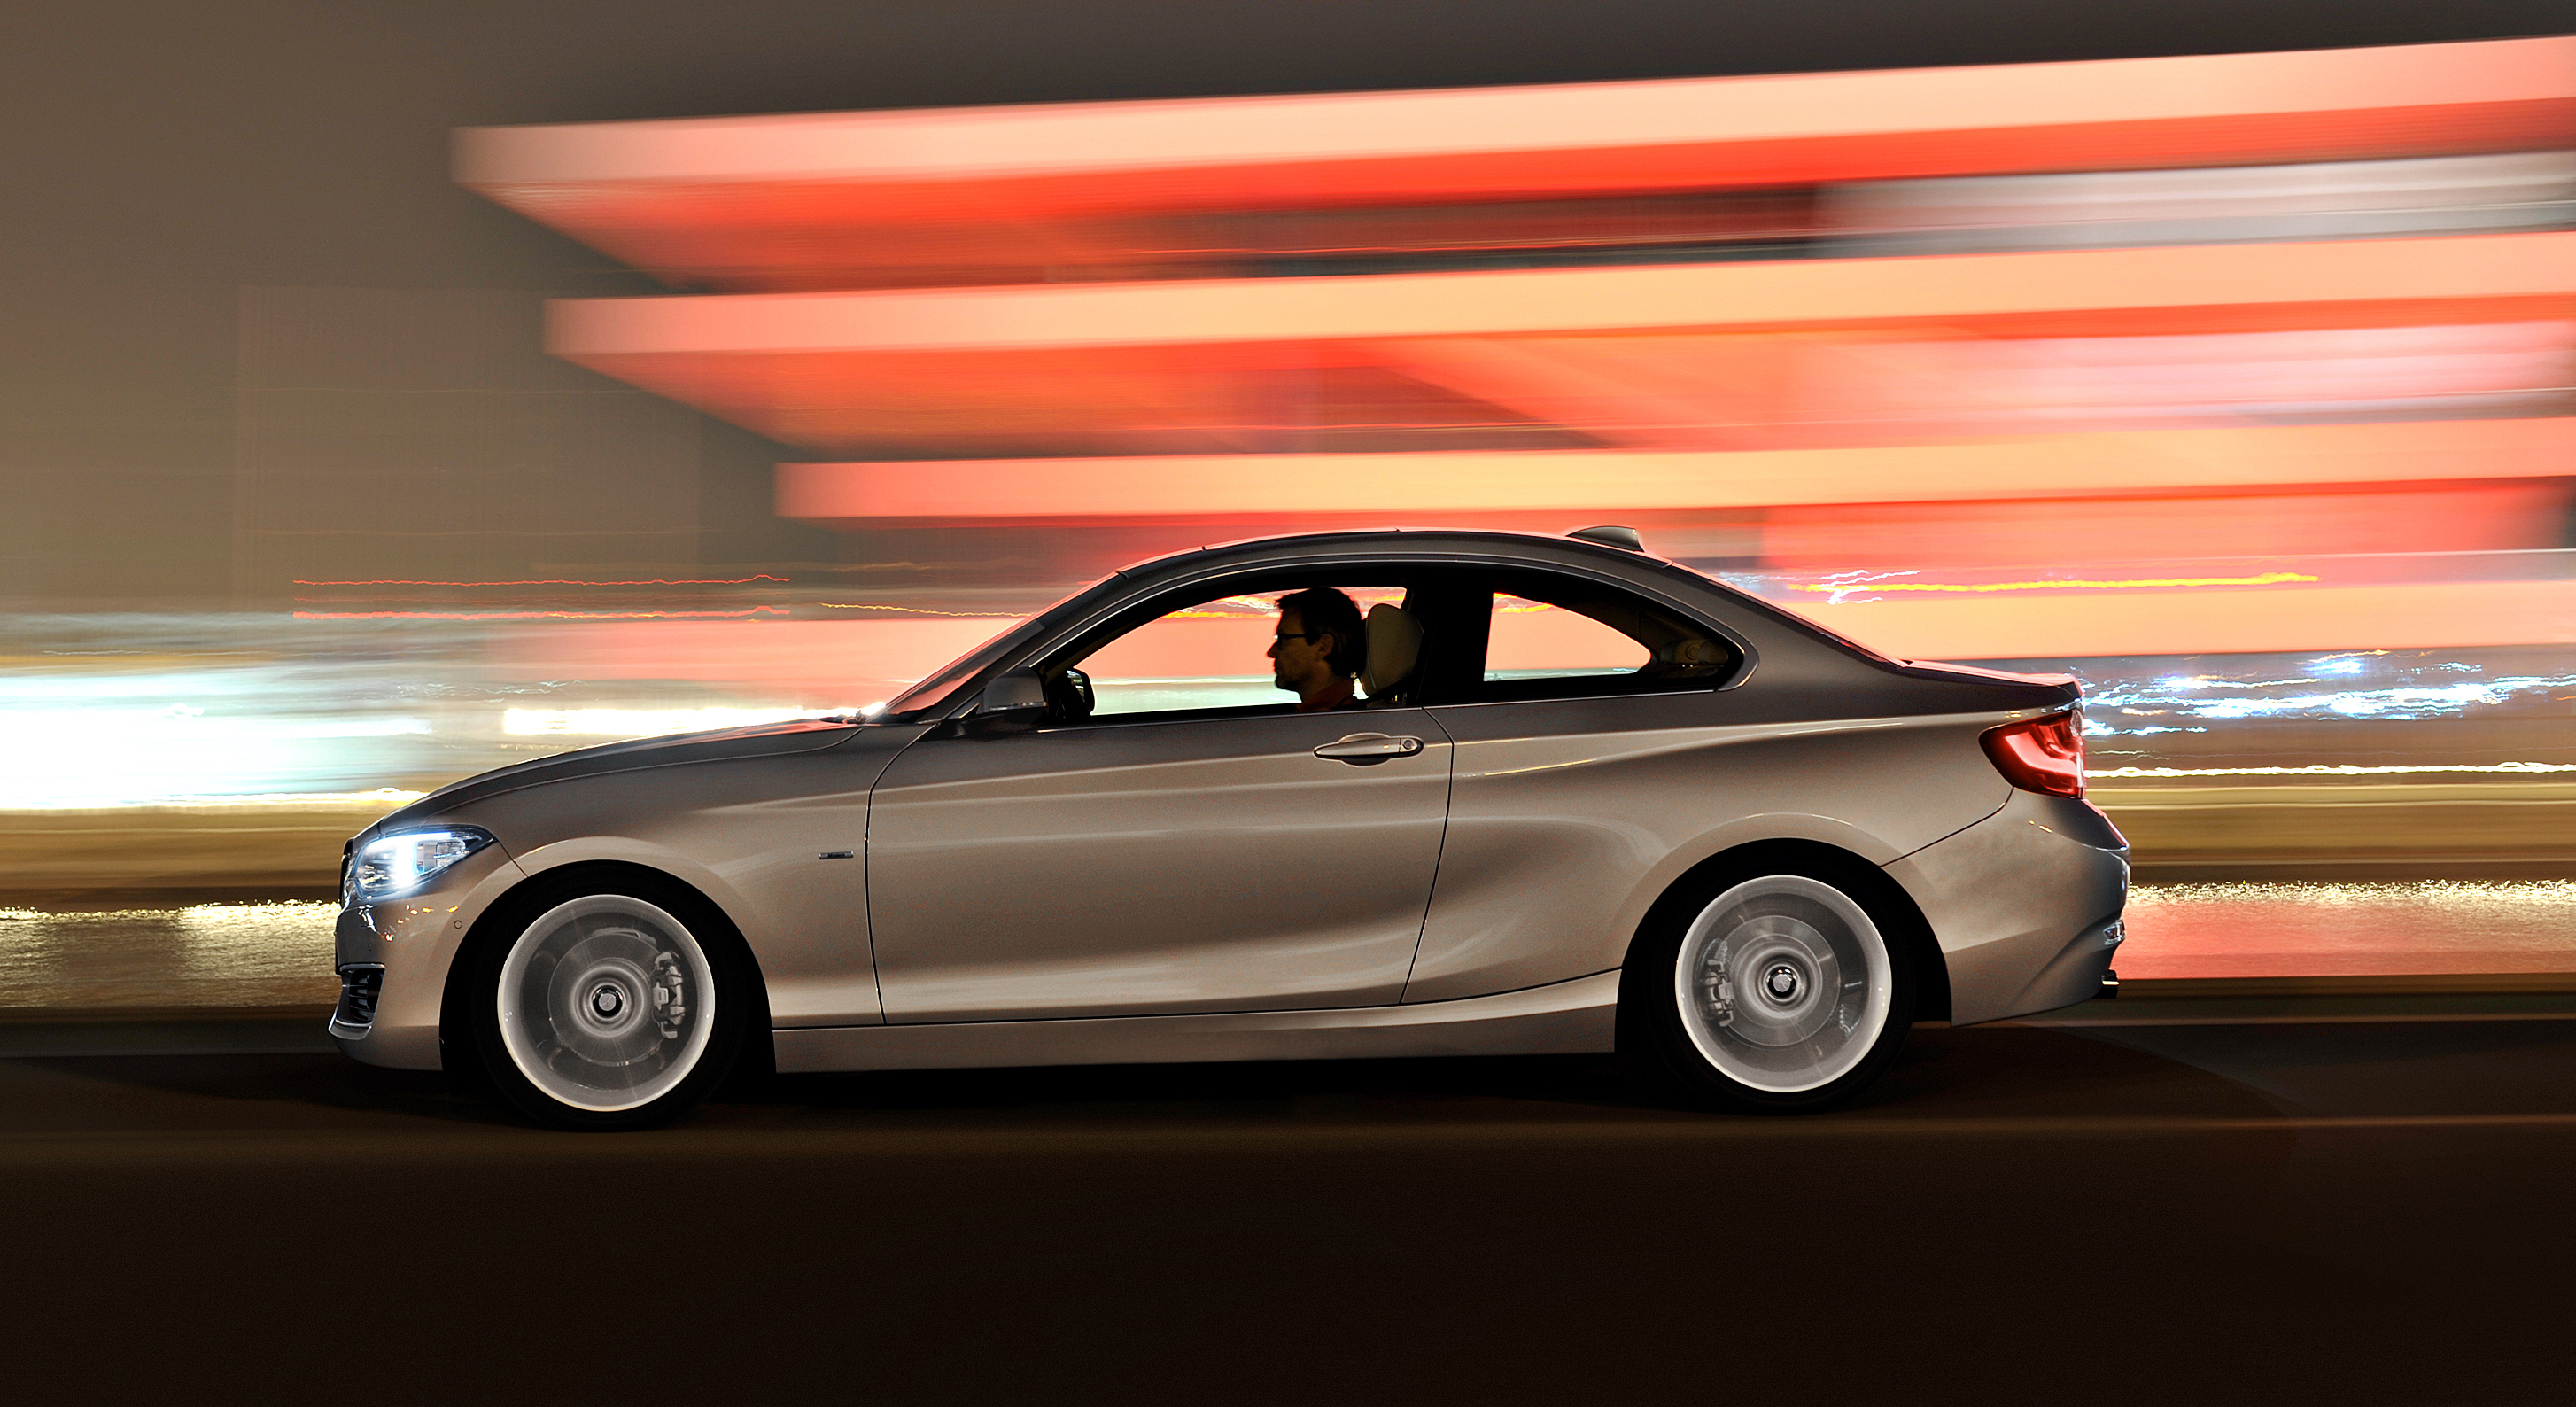 New Bmw 2 Series Coupe And M235i Unveiled In Full Image 206482